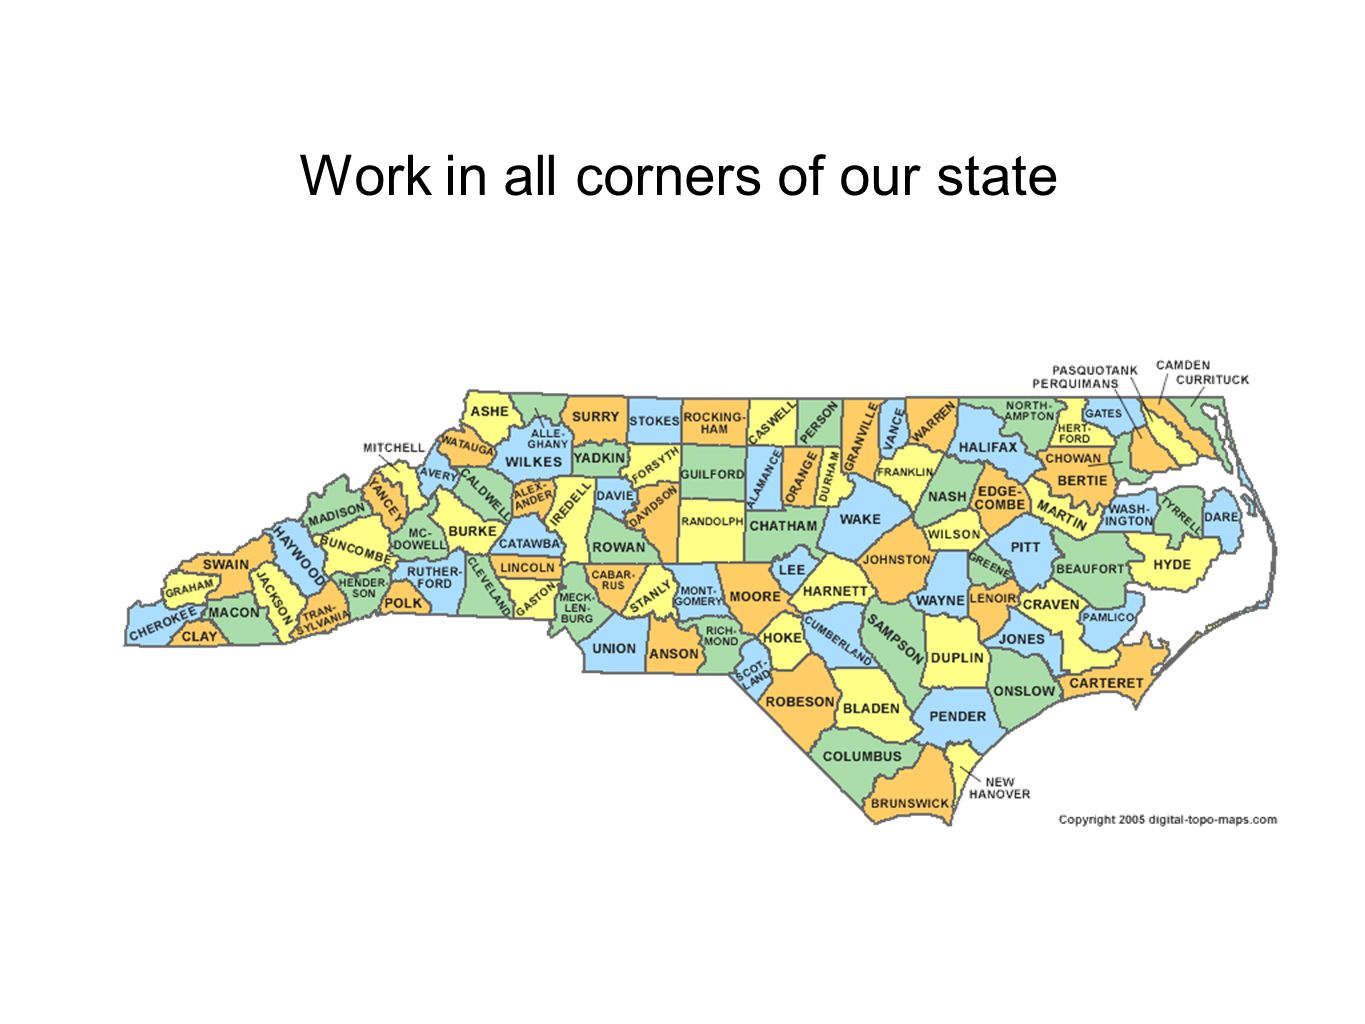 Work in all corners of our state